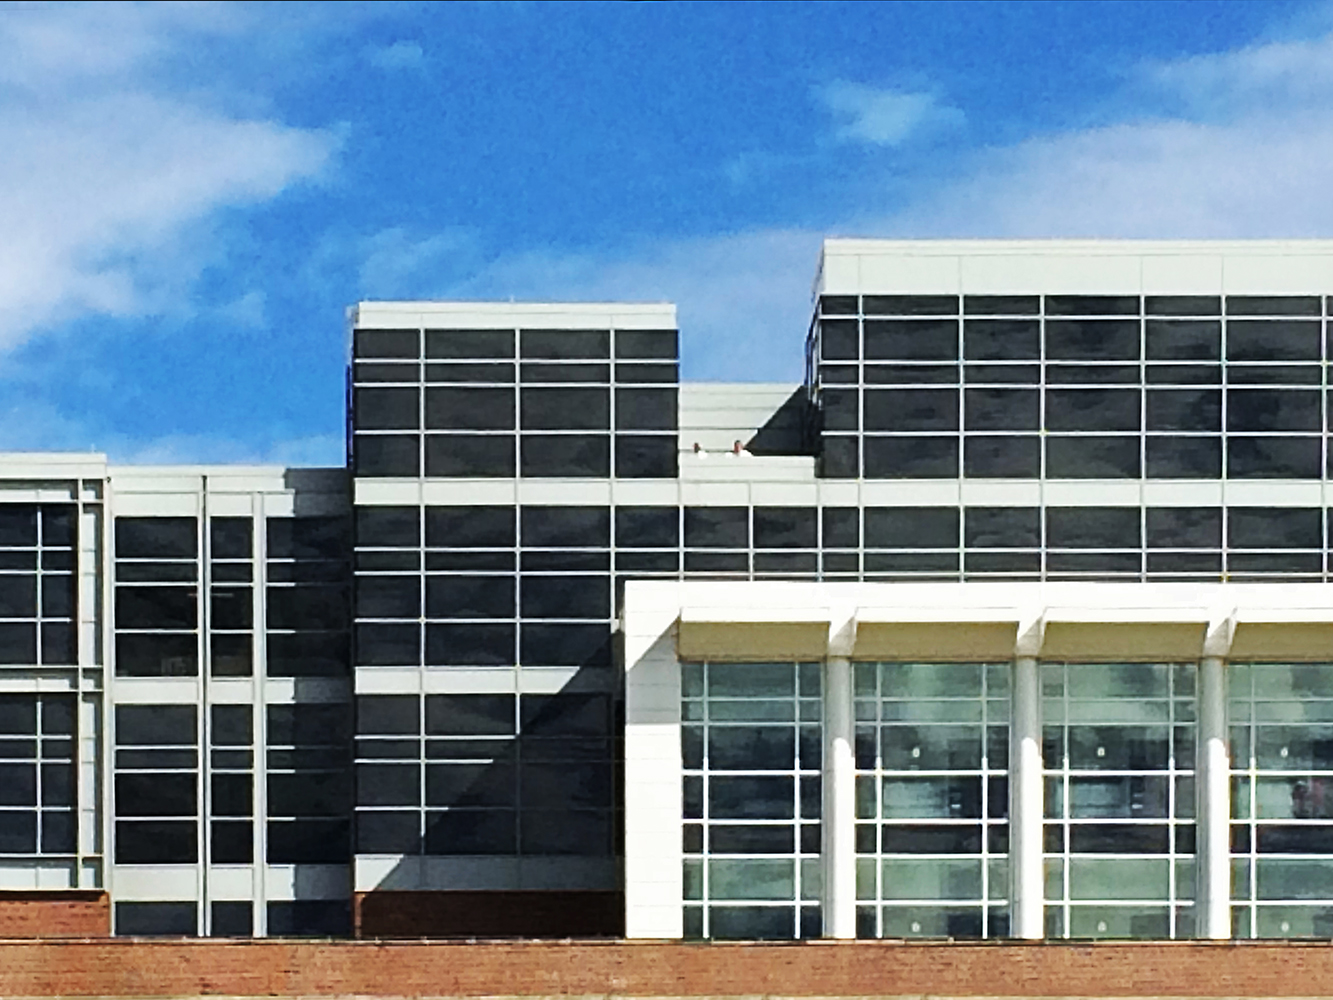 strait on shot of office building with a grid pattern Architectural Photography